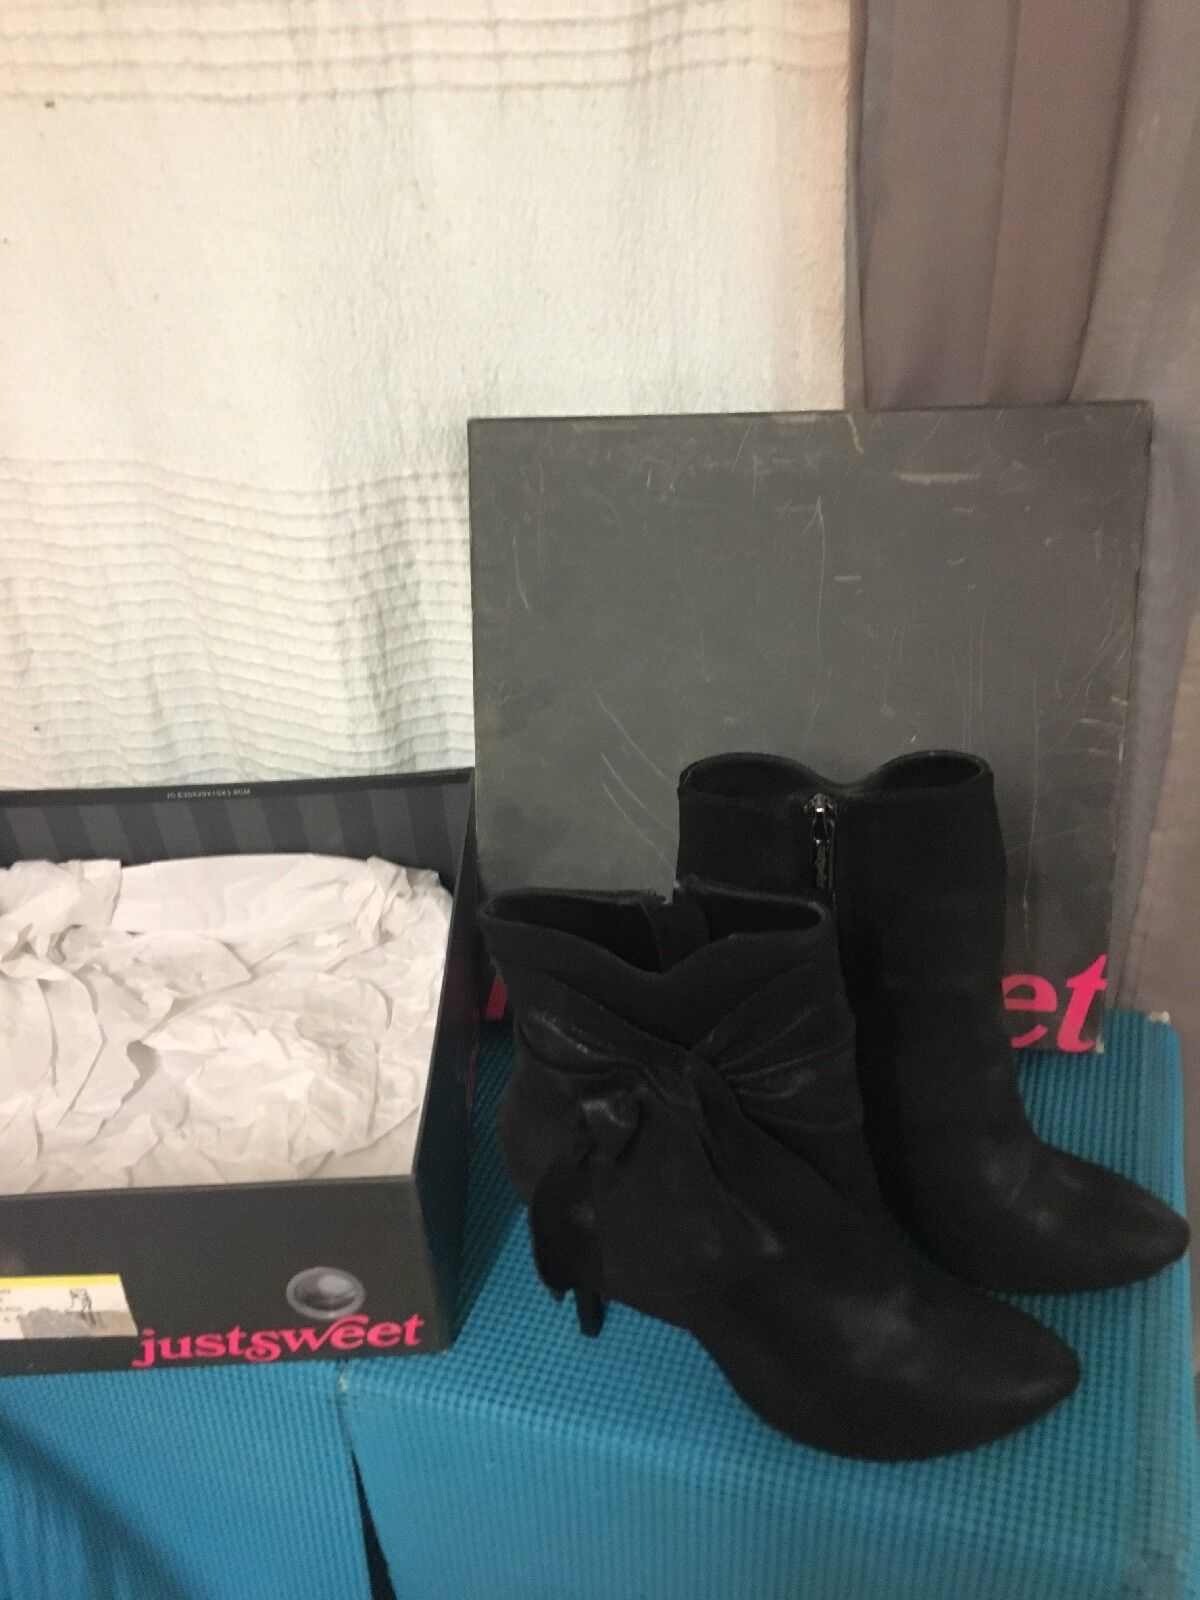 Jennifer Lopez JLO Just Sweet Justsweet black boots shoes size US 6 new in box